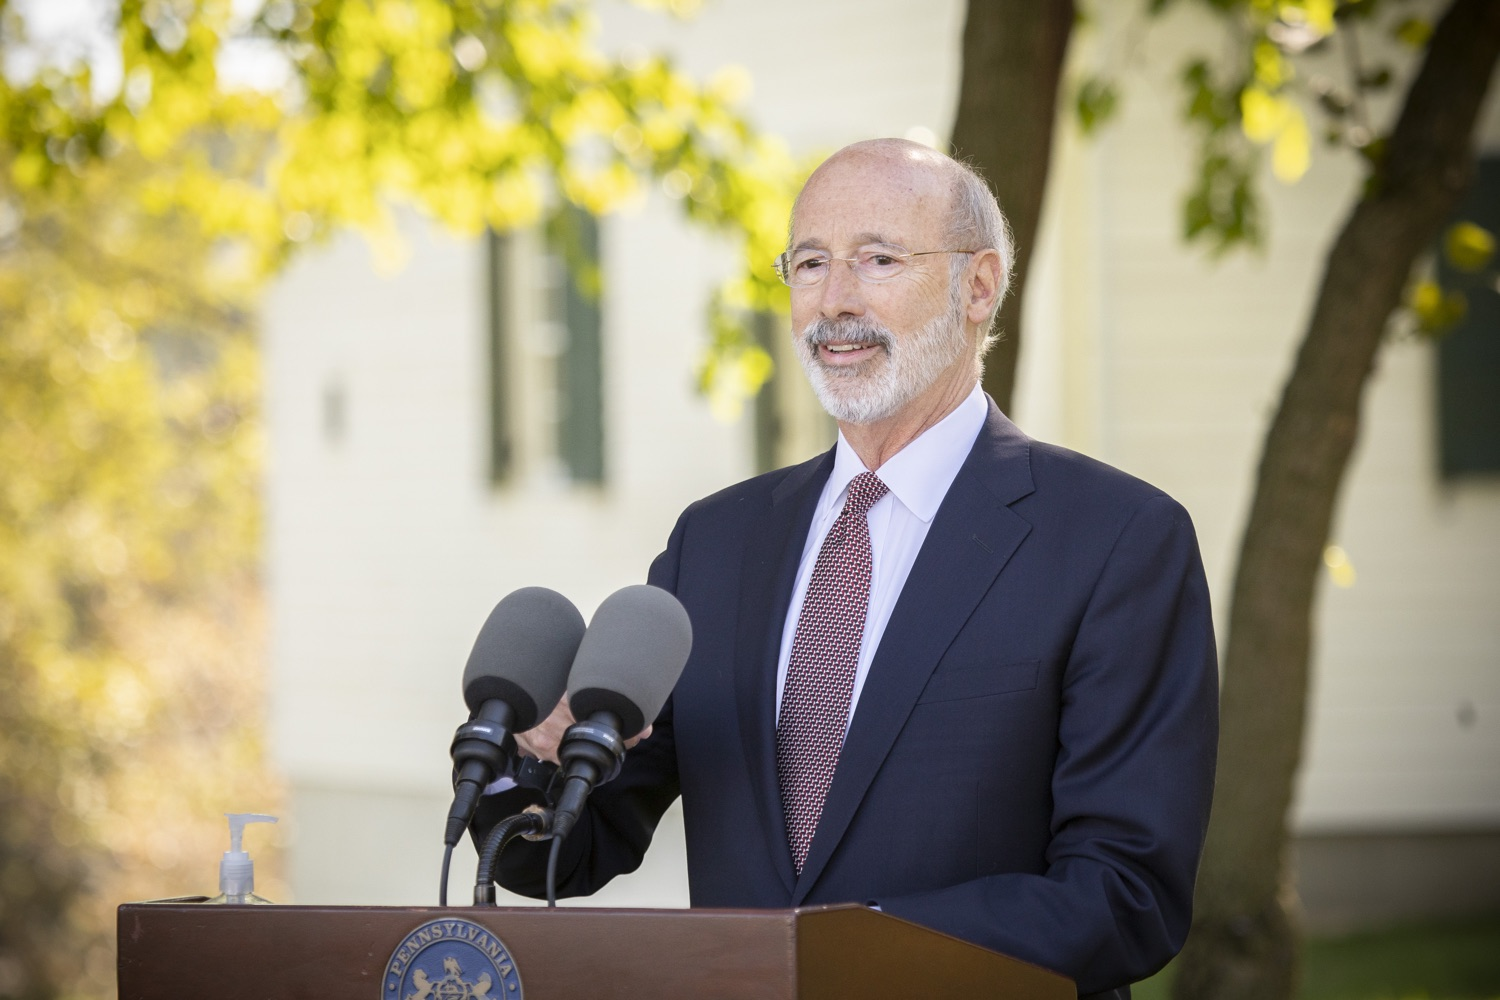 "<a href=""https://filesource.wostreaming.net/commonwealthofpa/photo/18321_gov_aca_dz_020.jpg"" target=""_blank"">⇣ Download Photo<br></a>Pennsylvania Governor Tom Wolf speaking to the press.  As the number of positive COVID-19 cases rise in Pennsylvania and as we enter flu season, protecting the Affordable Care Act (ACA) and ensuring that all Pennsylvanians have access to health coverage are more important than ever, Governor Tom Wolf said today in Chester County. The governor was joined by local elected officials and representatives from local health care organizations. Landenberg, PA  October 15, 2020"